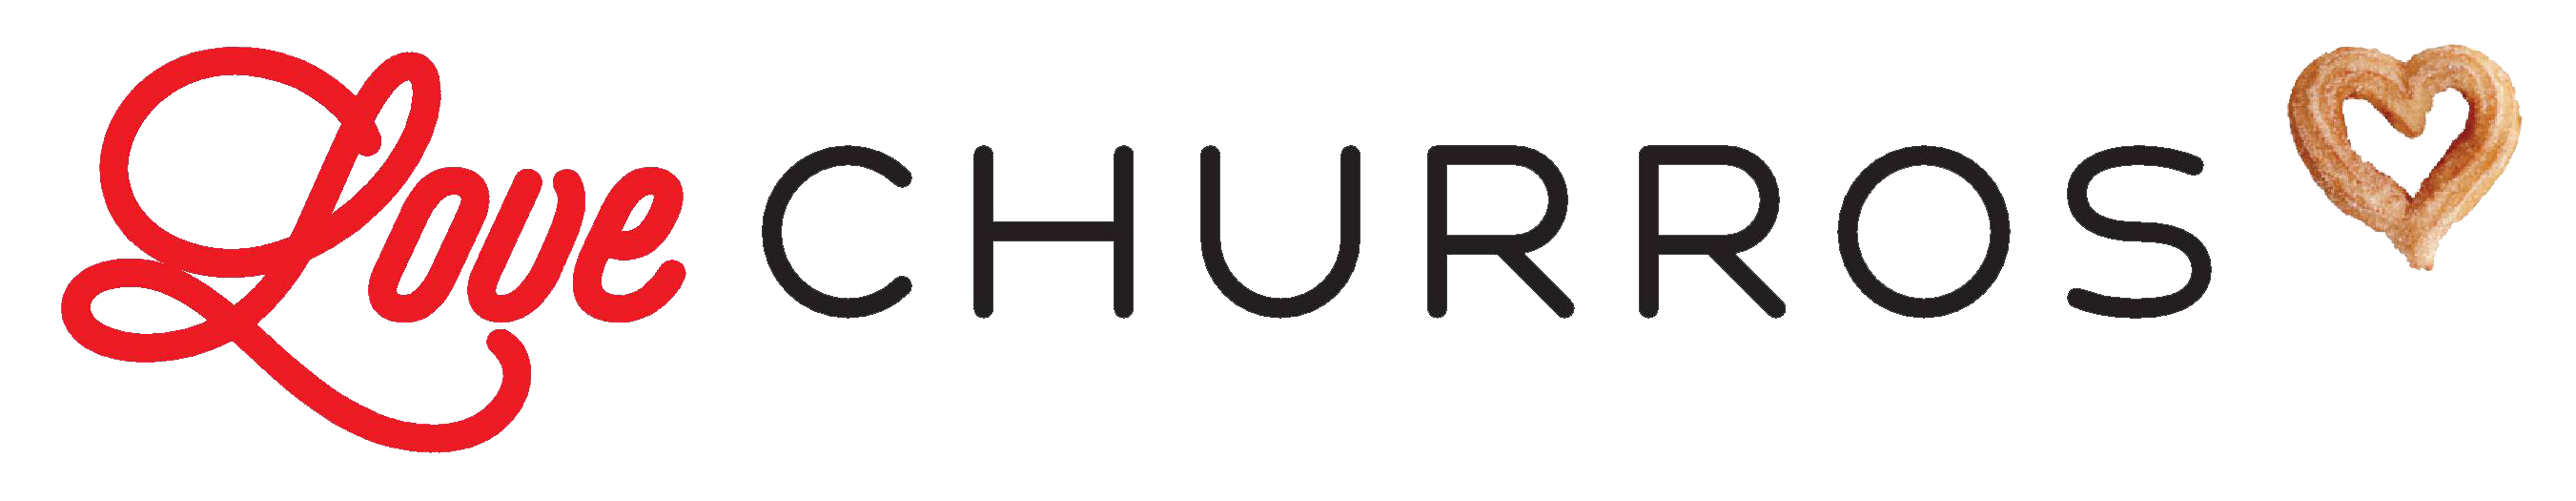 Love Churros logo